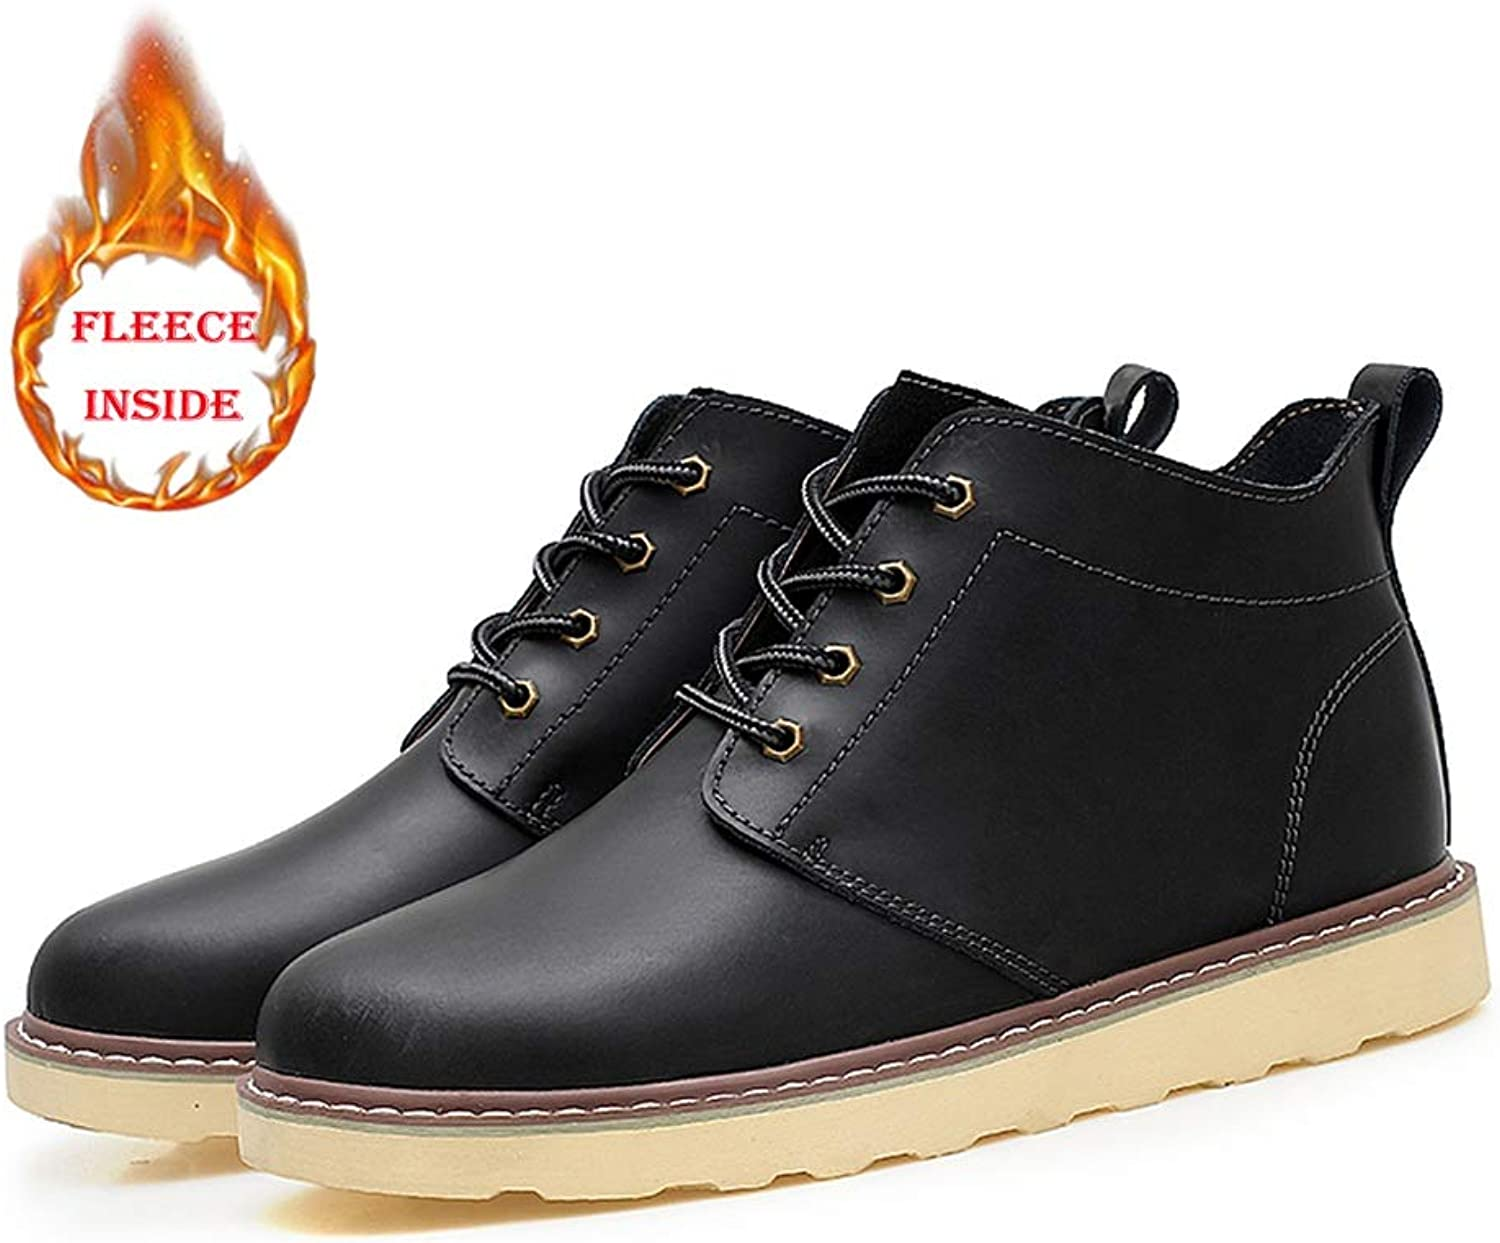 Dig dog bone Men's Fashion Ankle Work Boot Casual Classic Round Toe Winter Faux Fleece Inside High Top Boot(Conventional Optional)